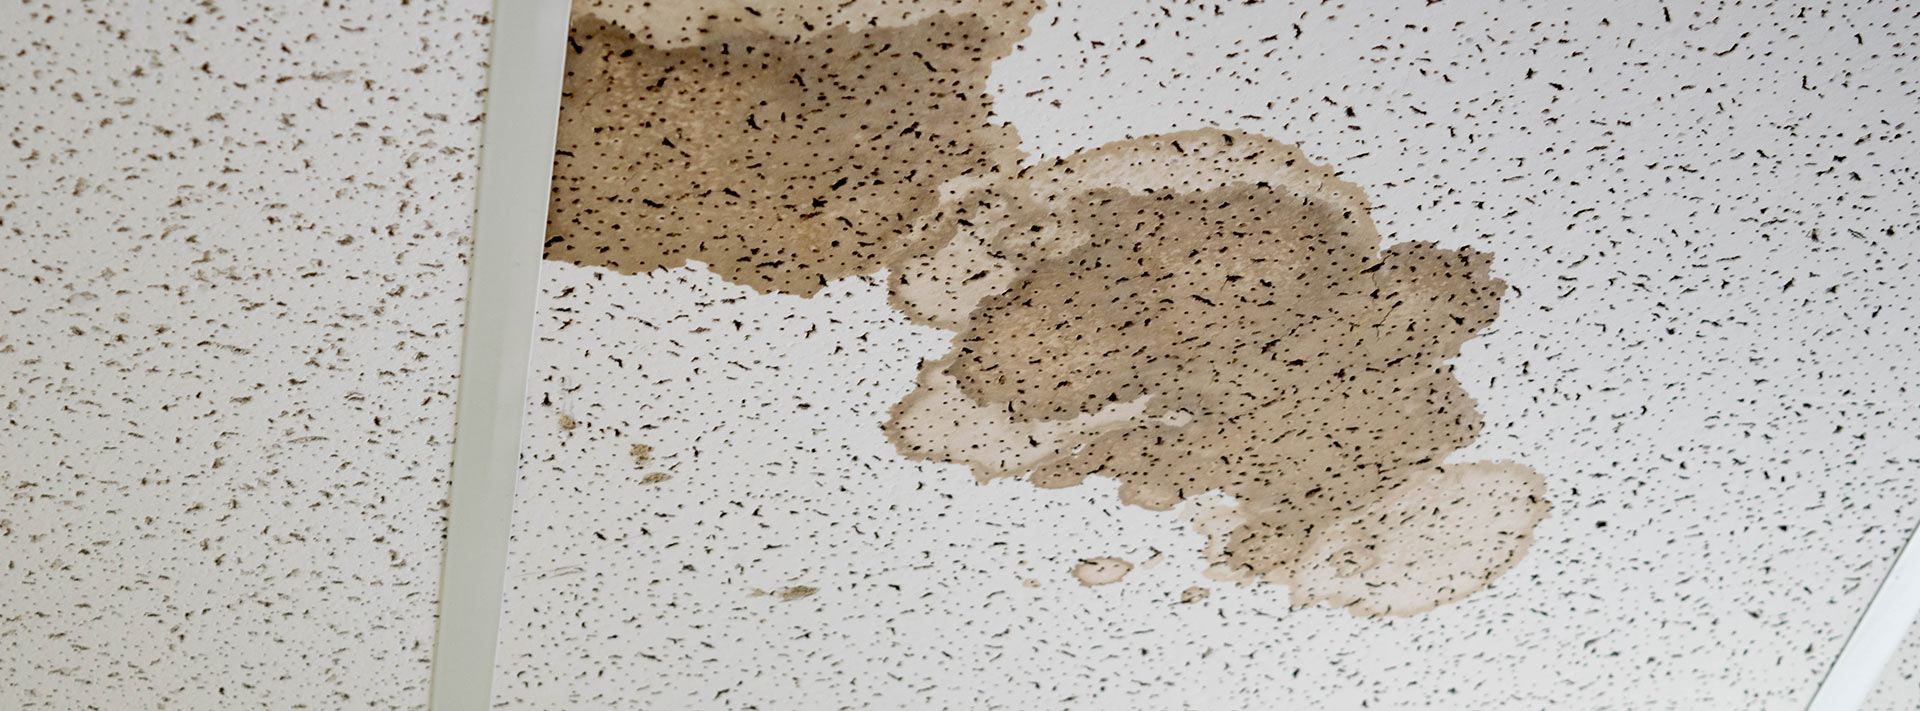 Stained ceilings - What you need to know